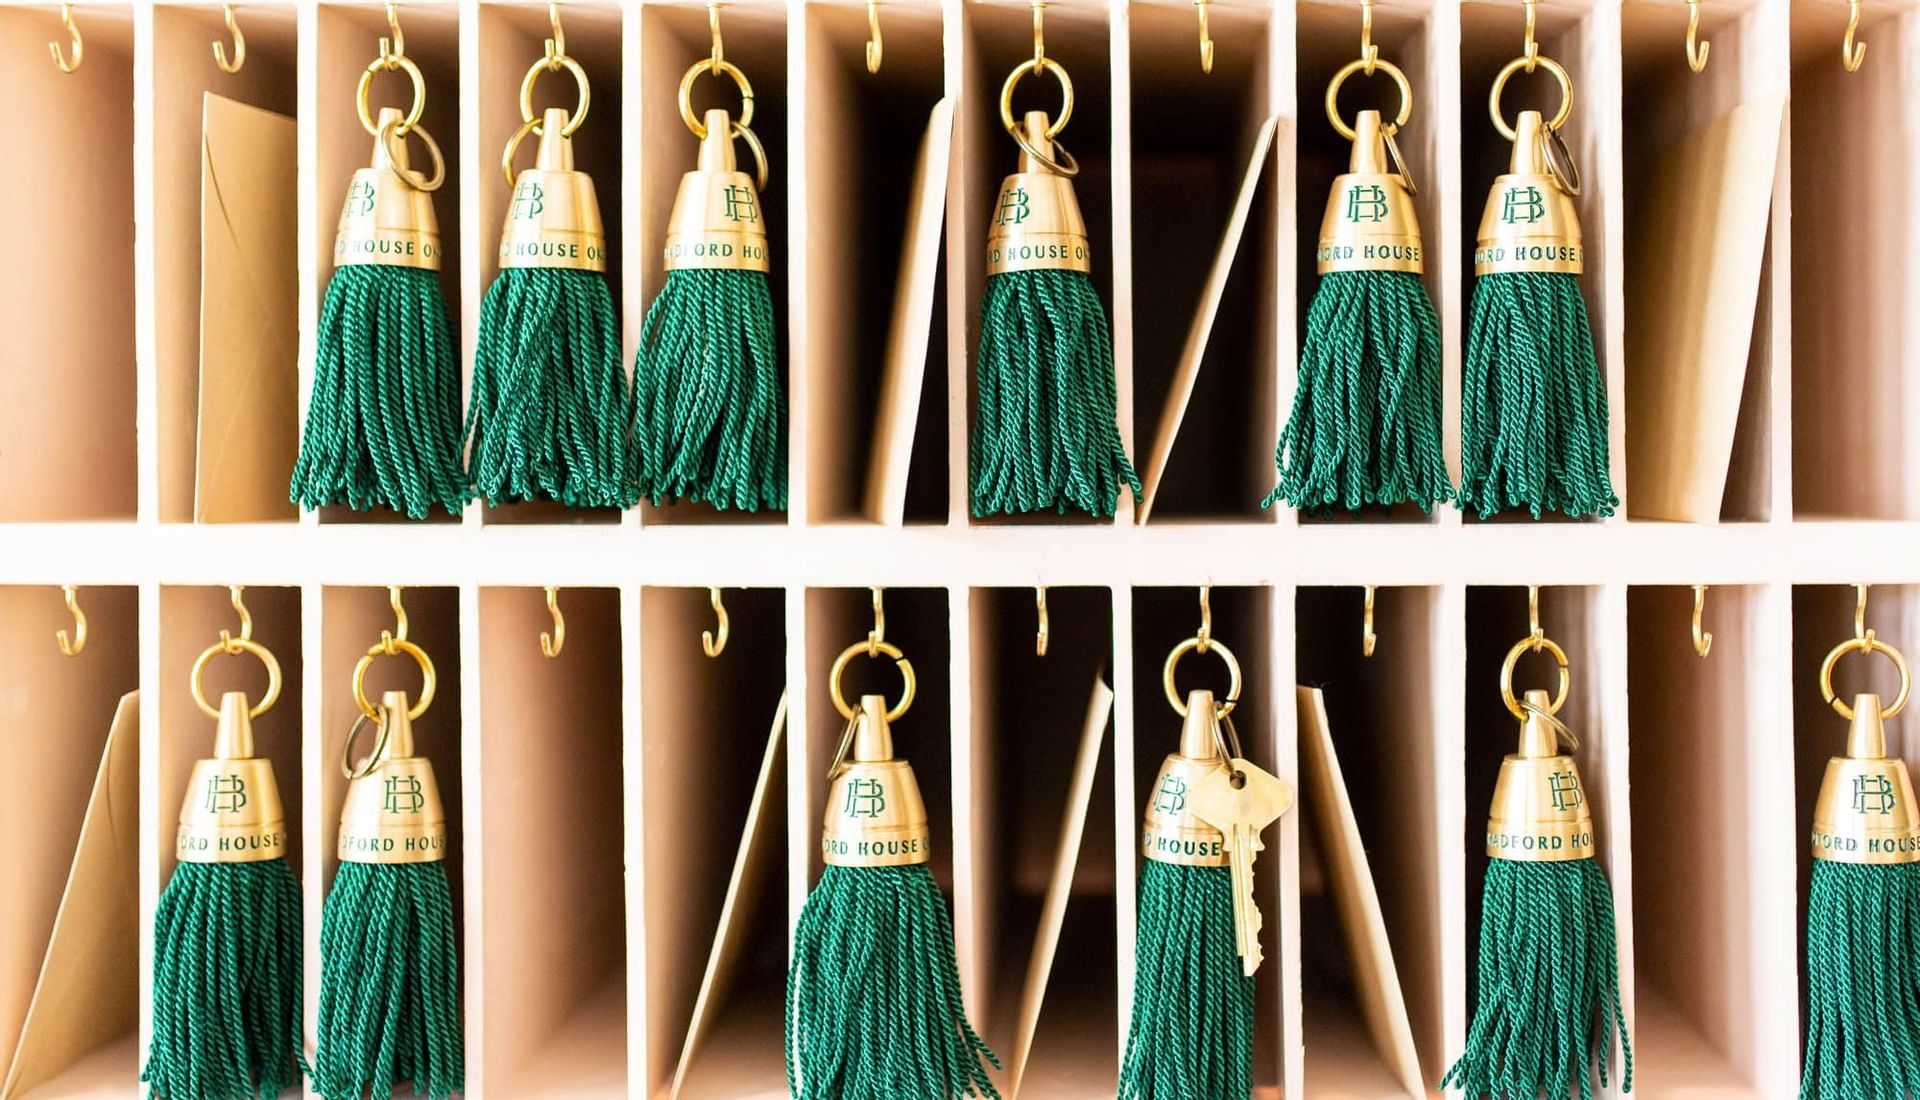 keys with green strings